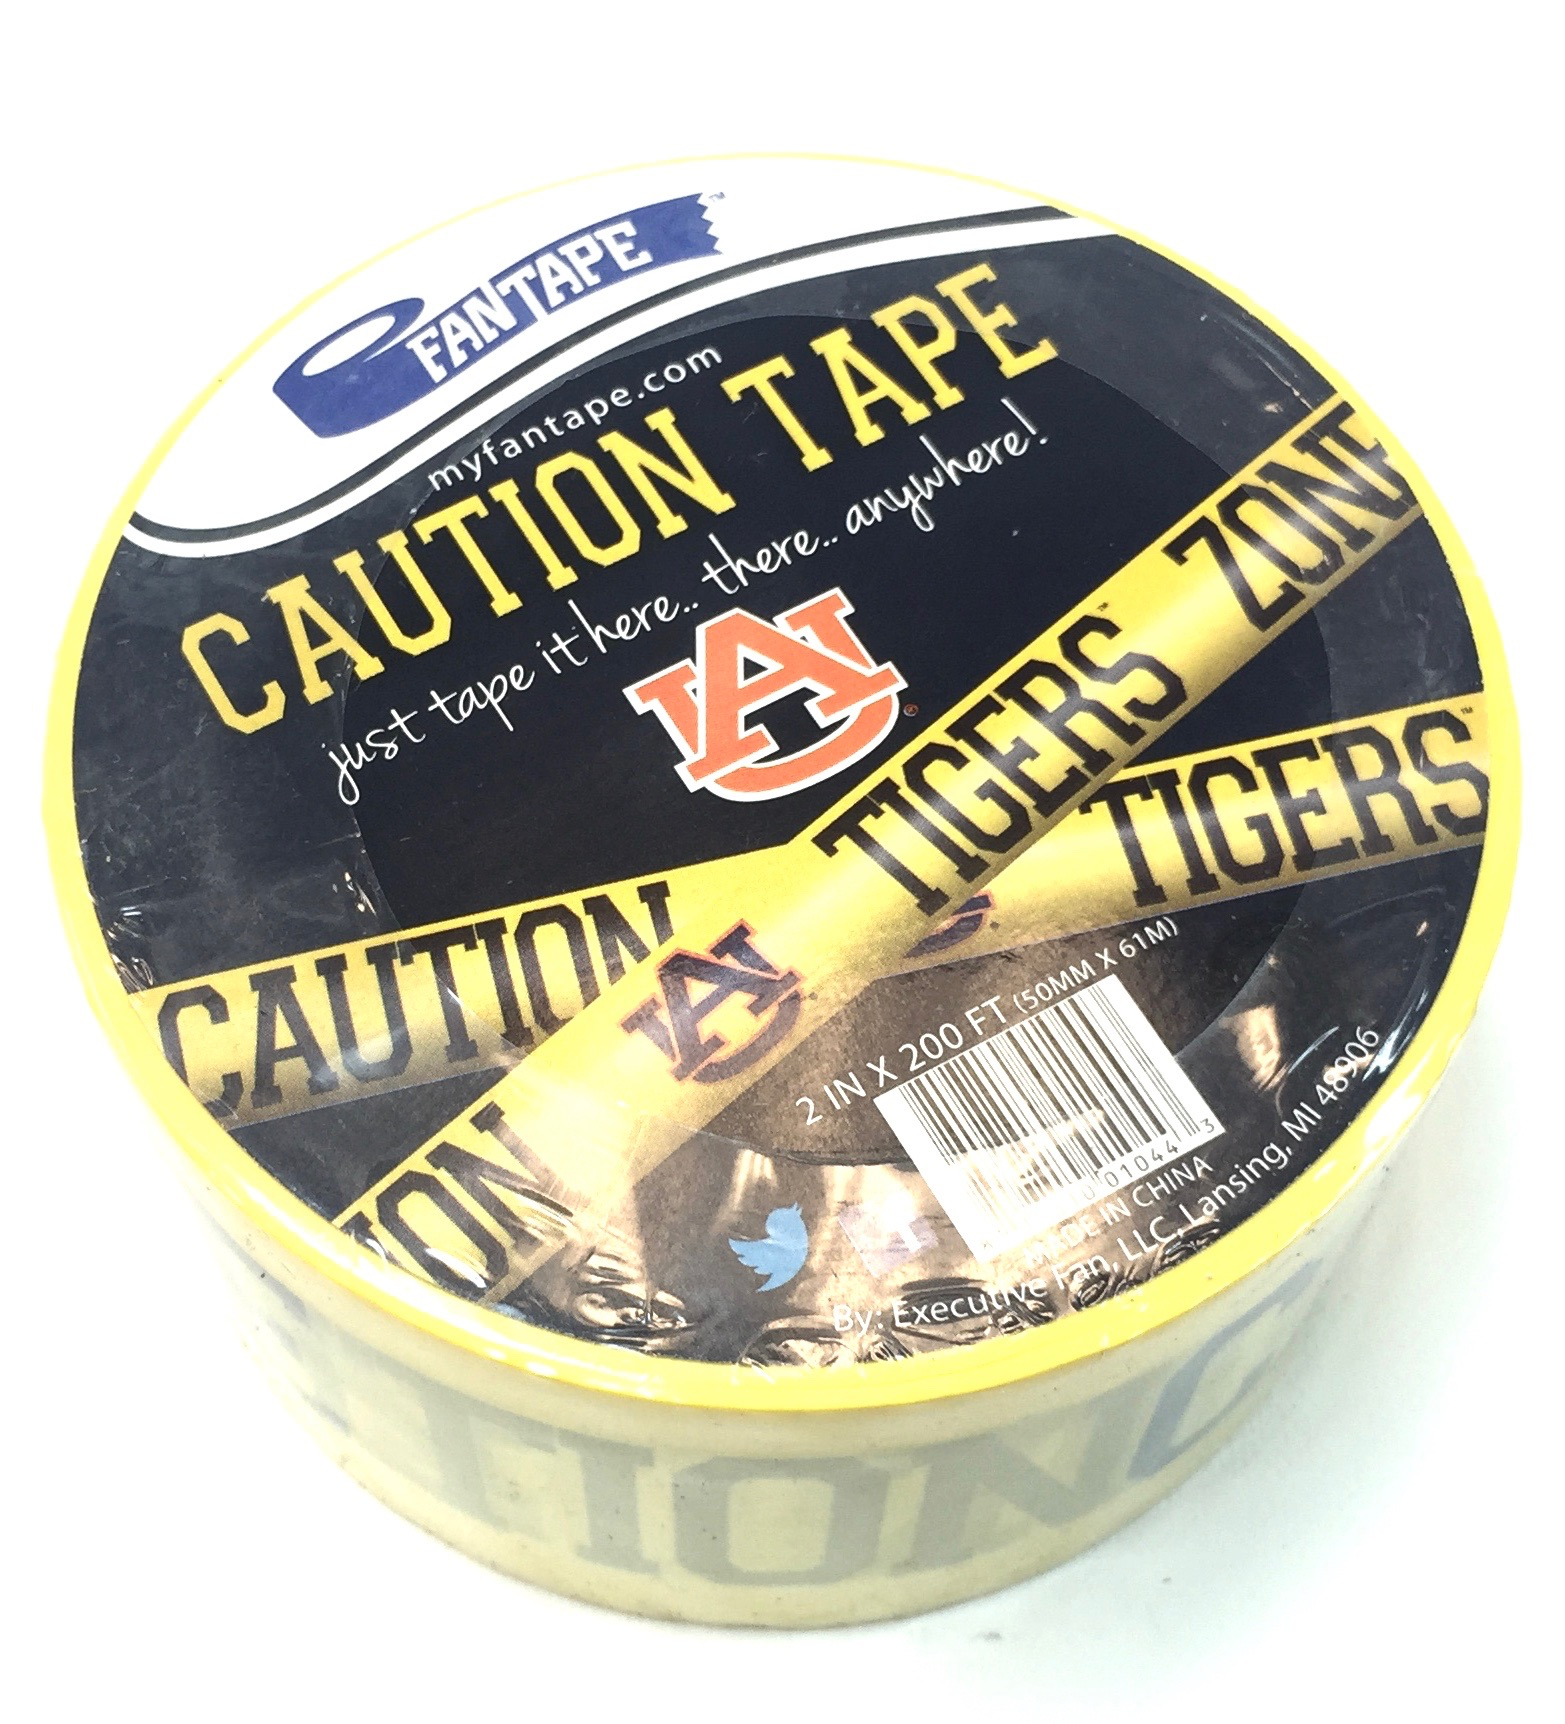 (010443) Caution Tape - Auburn